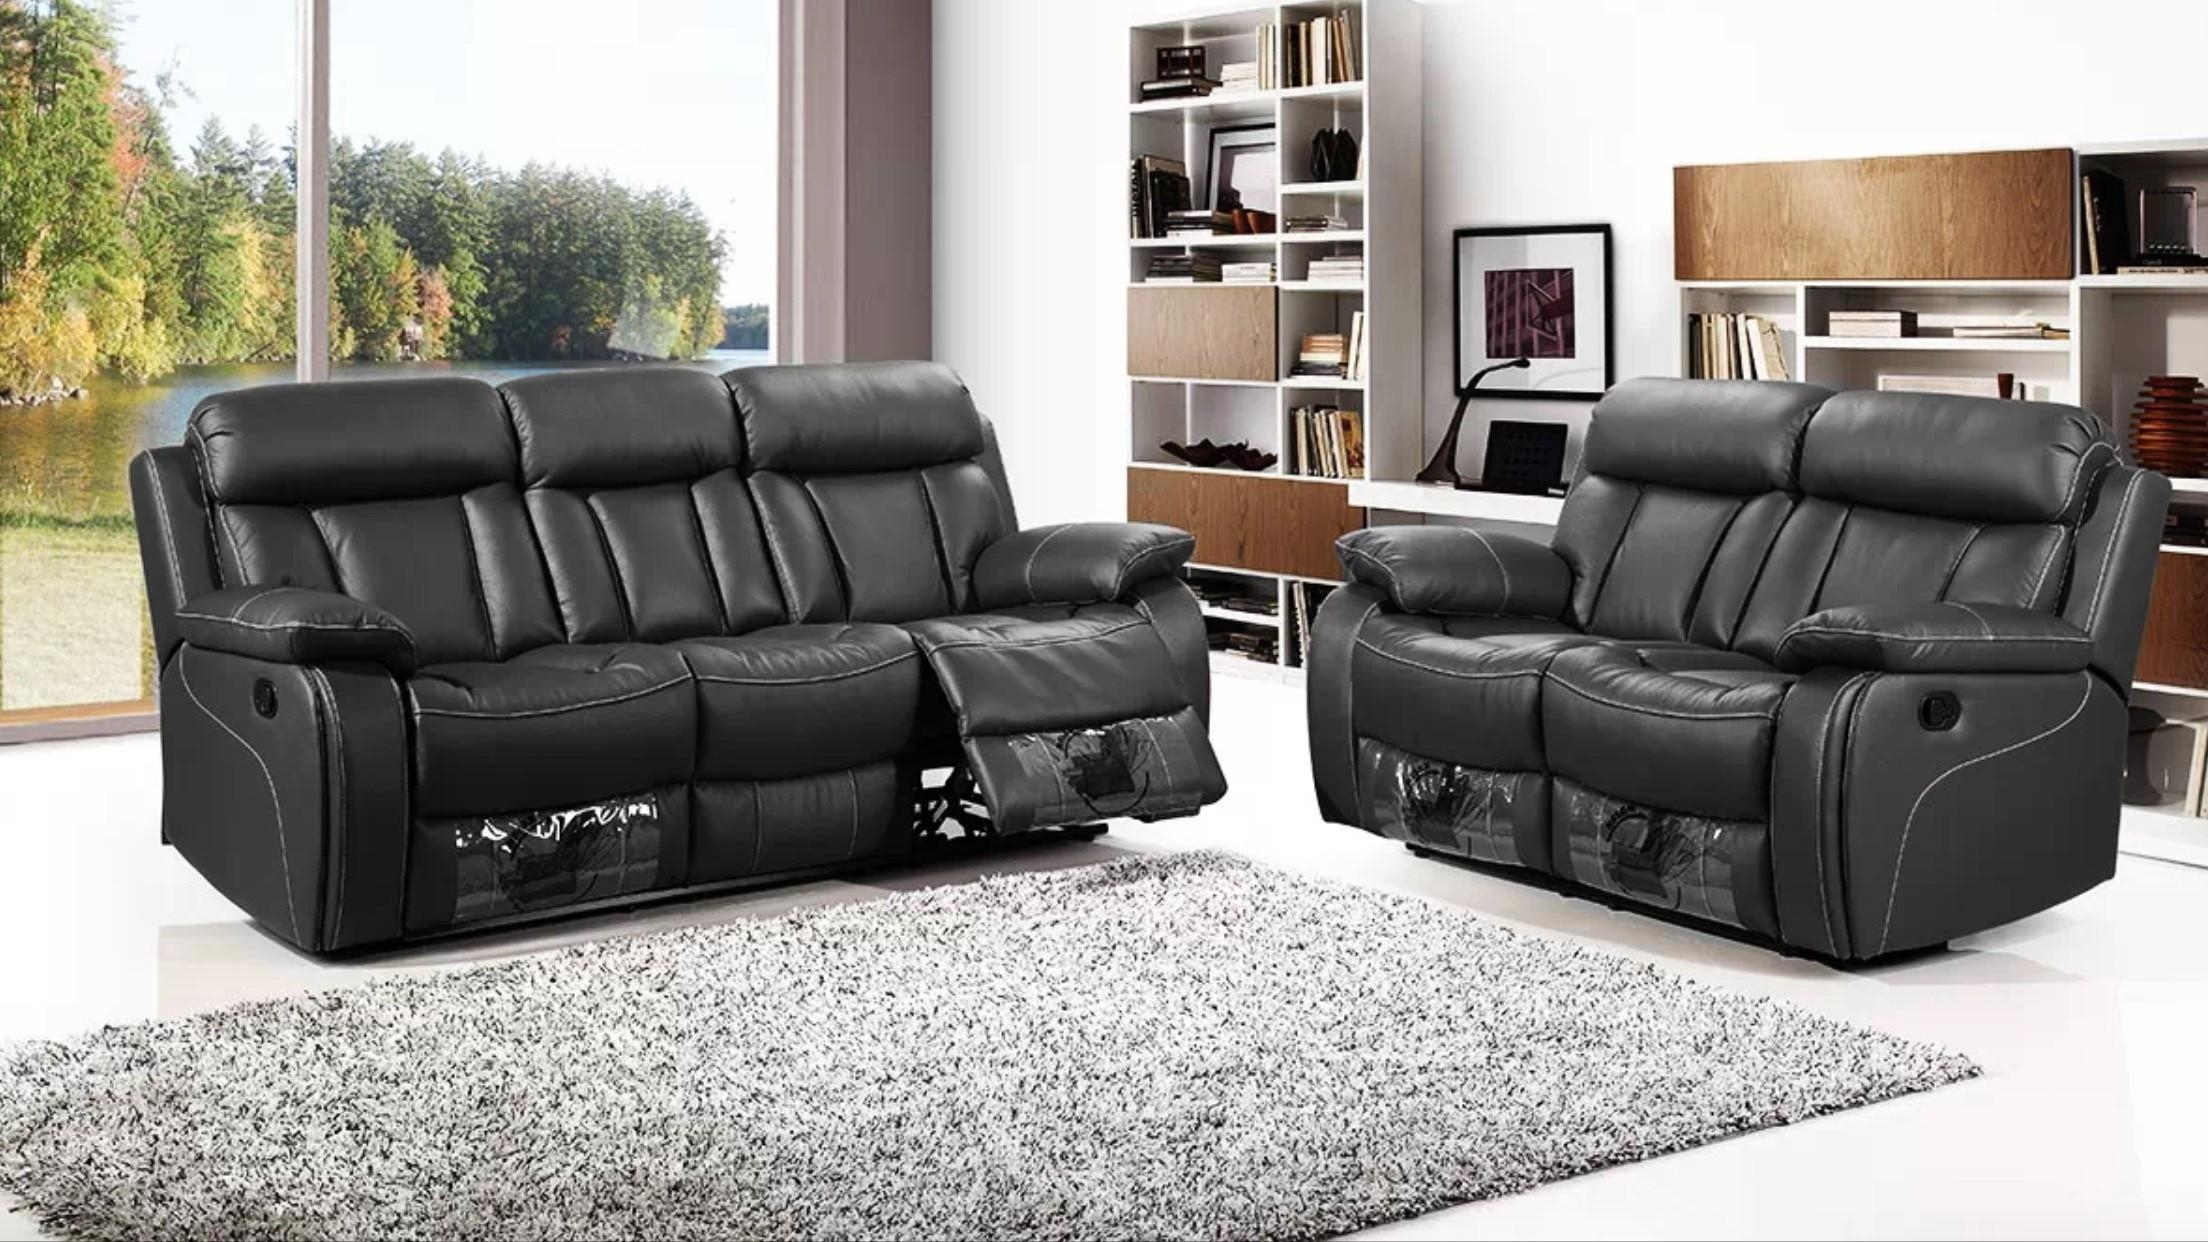 Memphis Black 3 Seater Recliner Sofa And Free Matching 2 Seater Inside 3 Seater Sofas For Sale (Image 14 of 21)